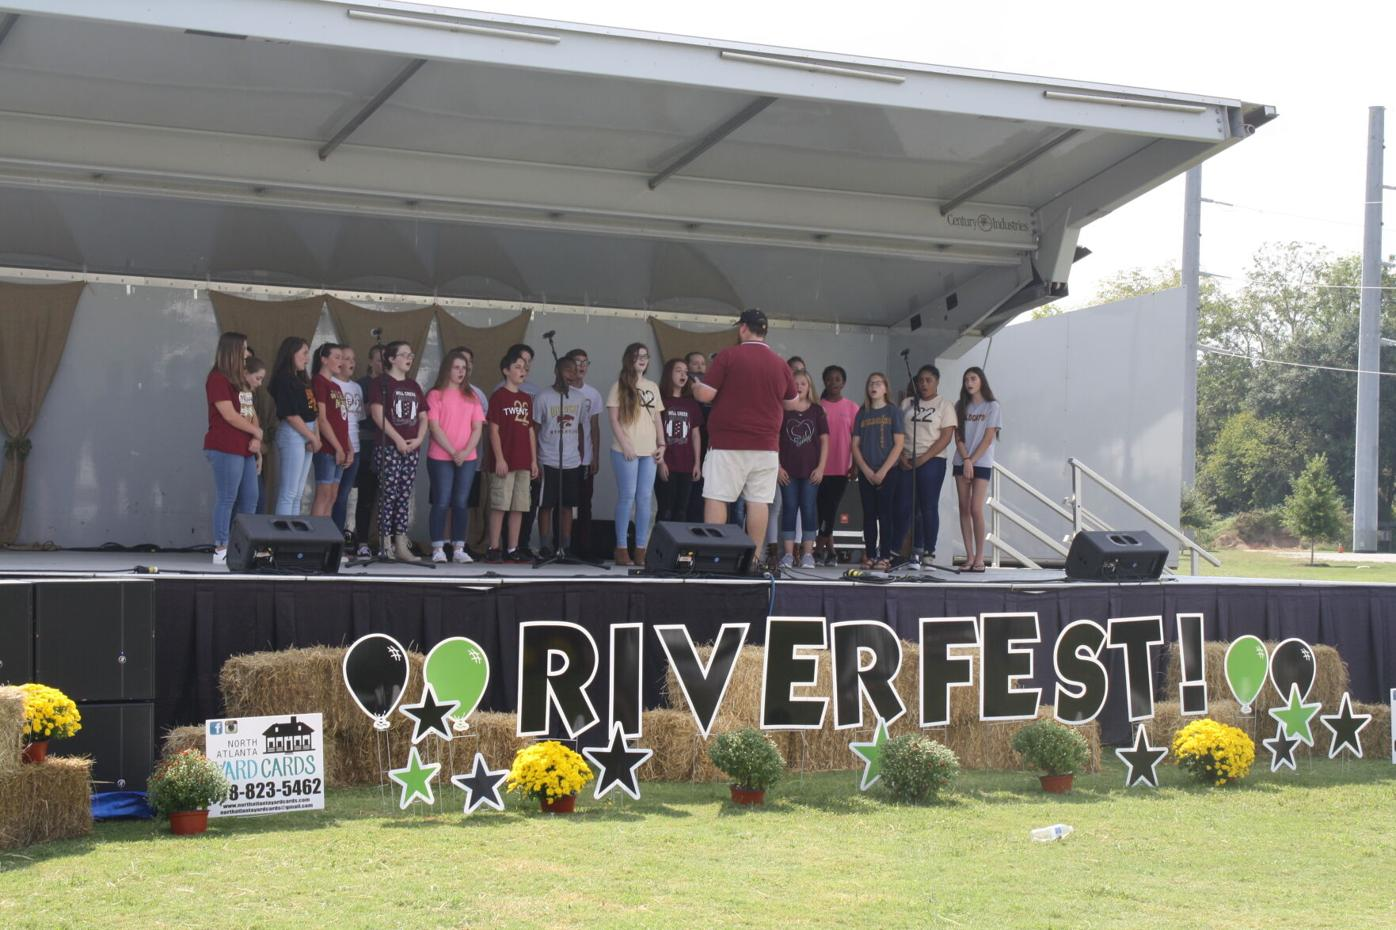 Pic of Stage - Riverfest.JPG